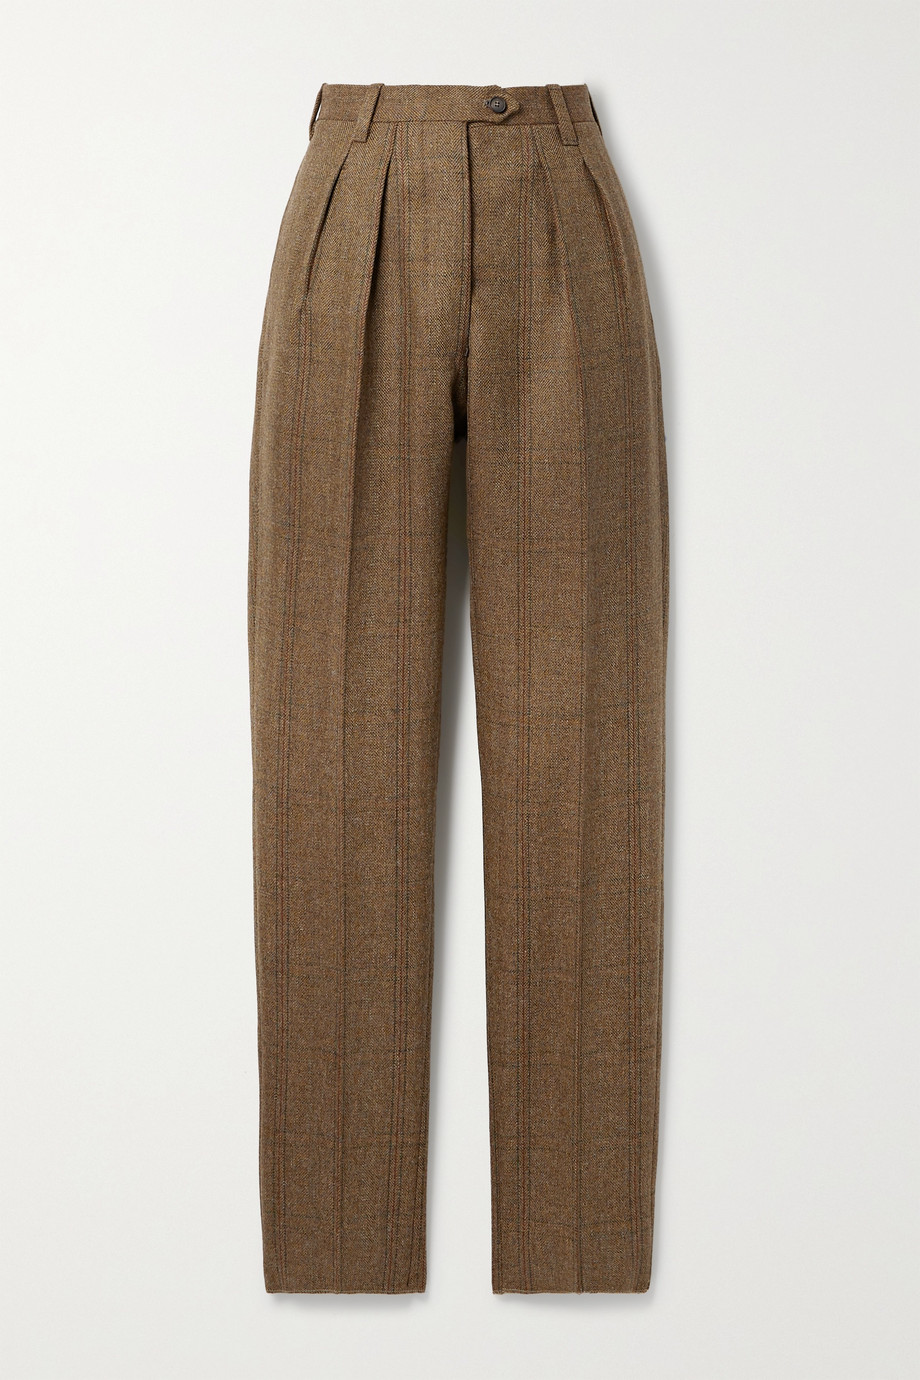 Giuliva Heritage + NET SUSTAIN The Husband checked herringbone wool slim-leg pants